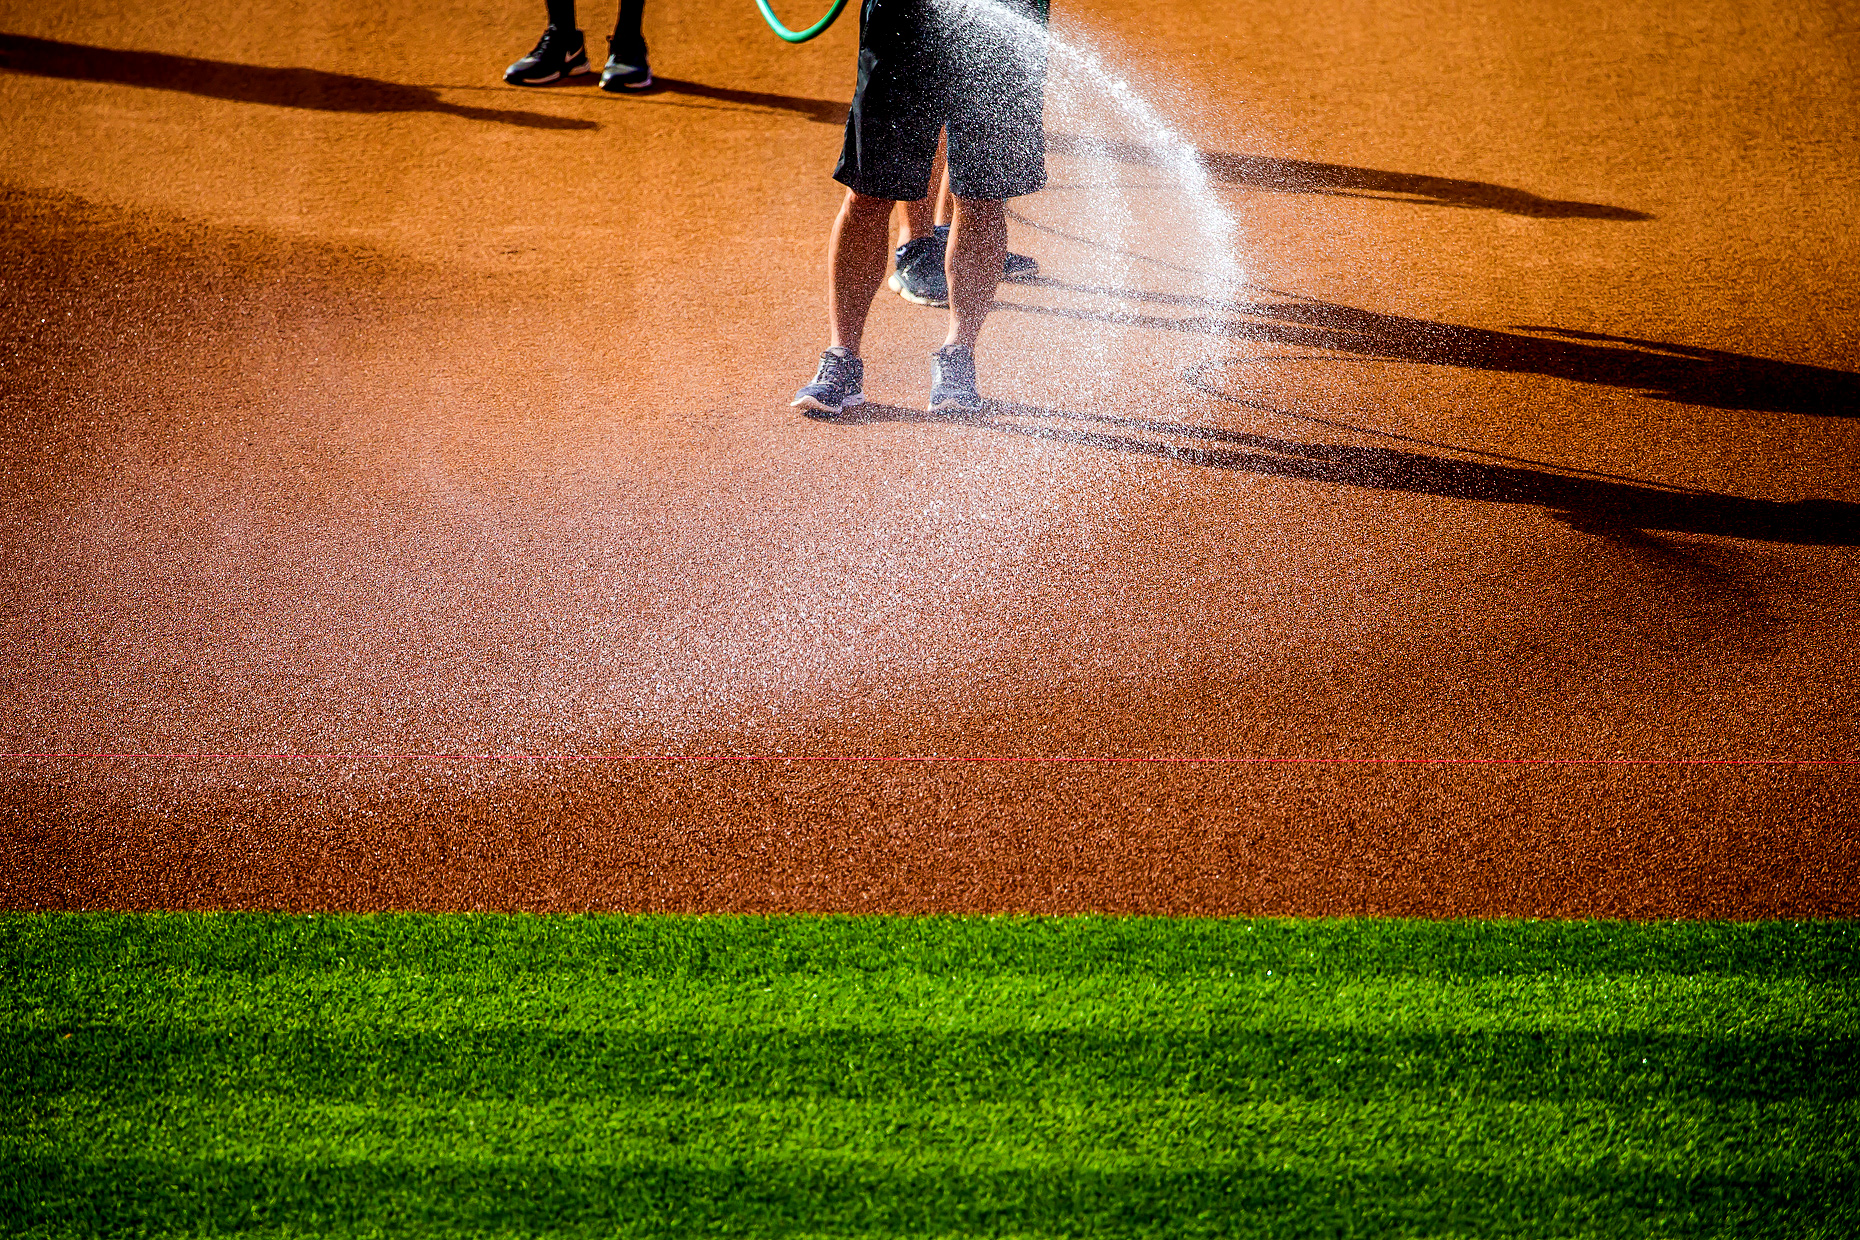 chip litherland lock and land rockies sports photography denver 0007.JPG